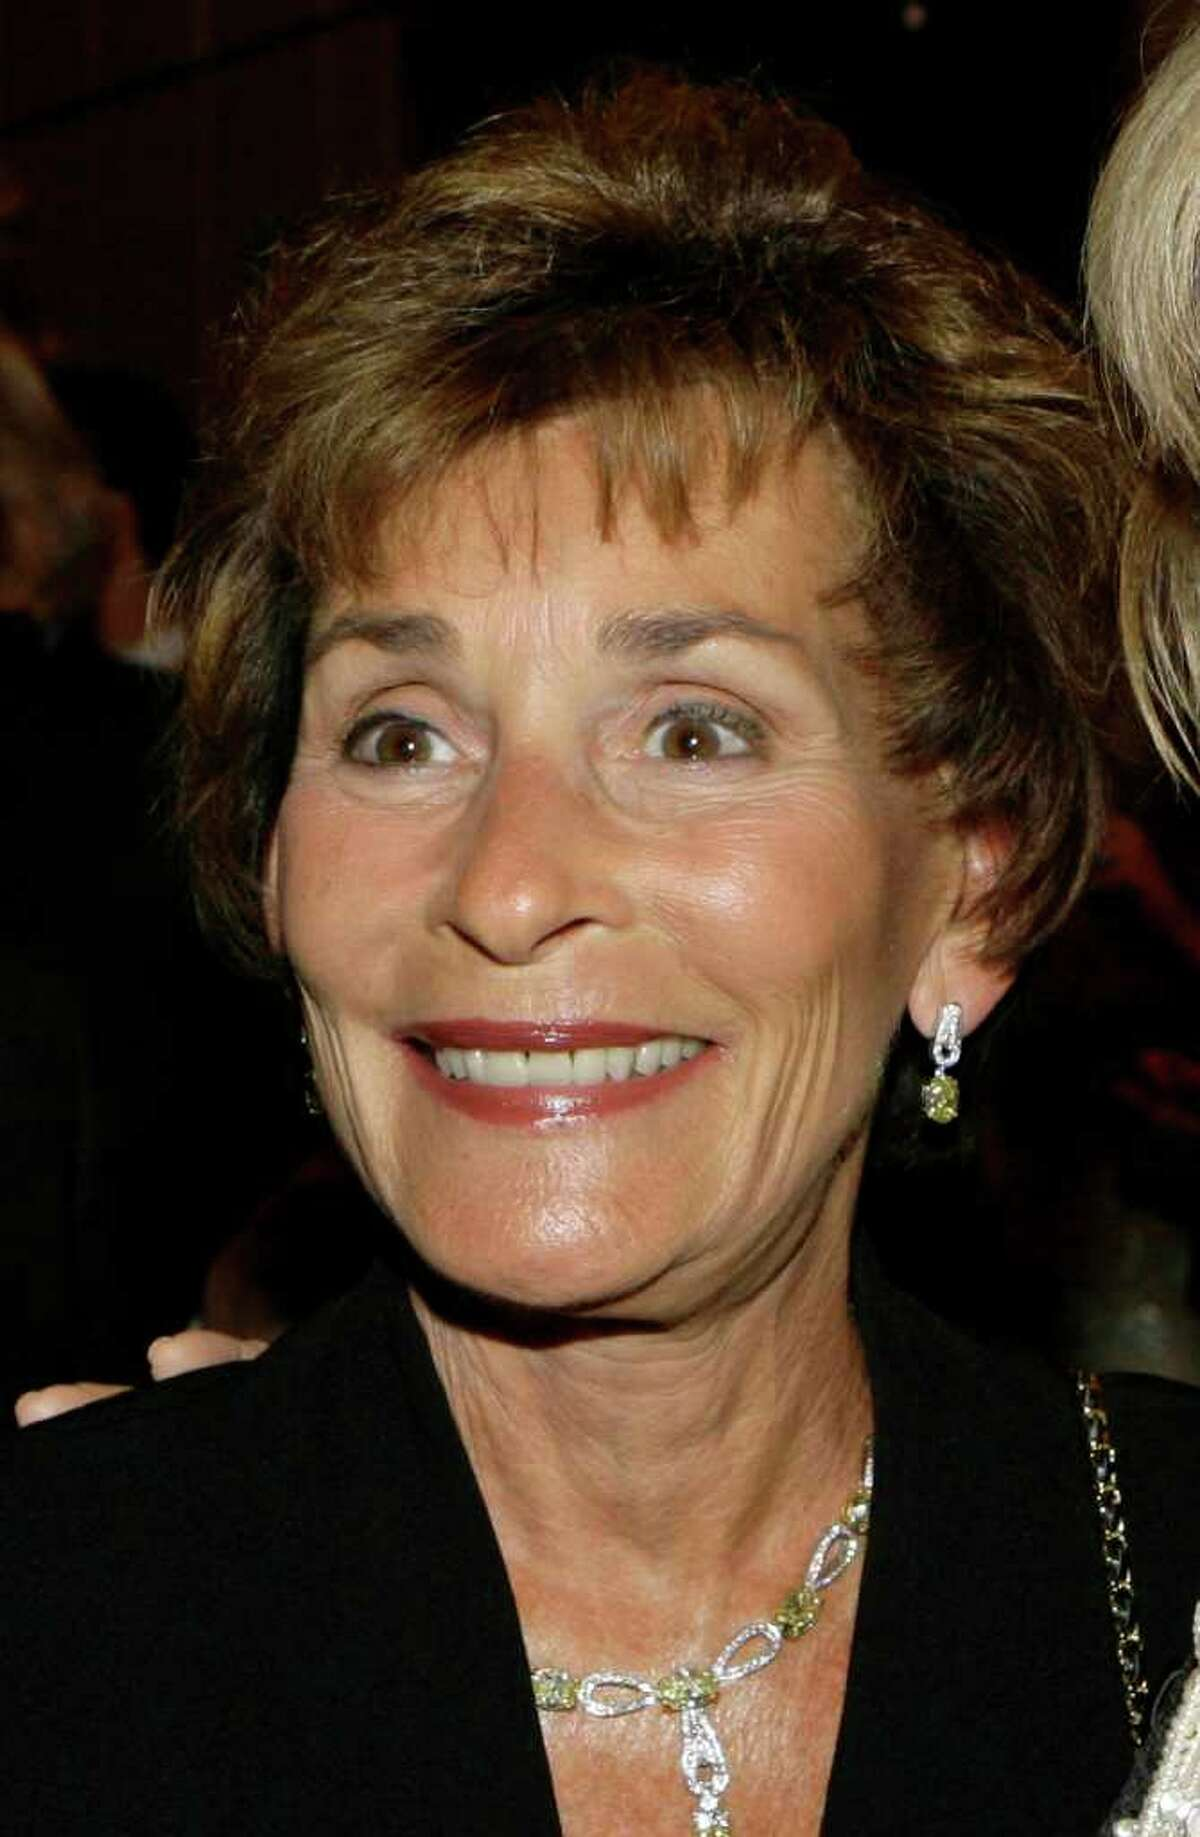 FILE - In this April 18, 2007 file photo, Judge Judy Sheindlin is shown at a party held by CNN celebrating Larry King's fifty years of broadcasting in New York. (AP Photo/Stuart Ramson, file)